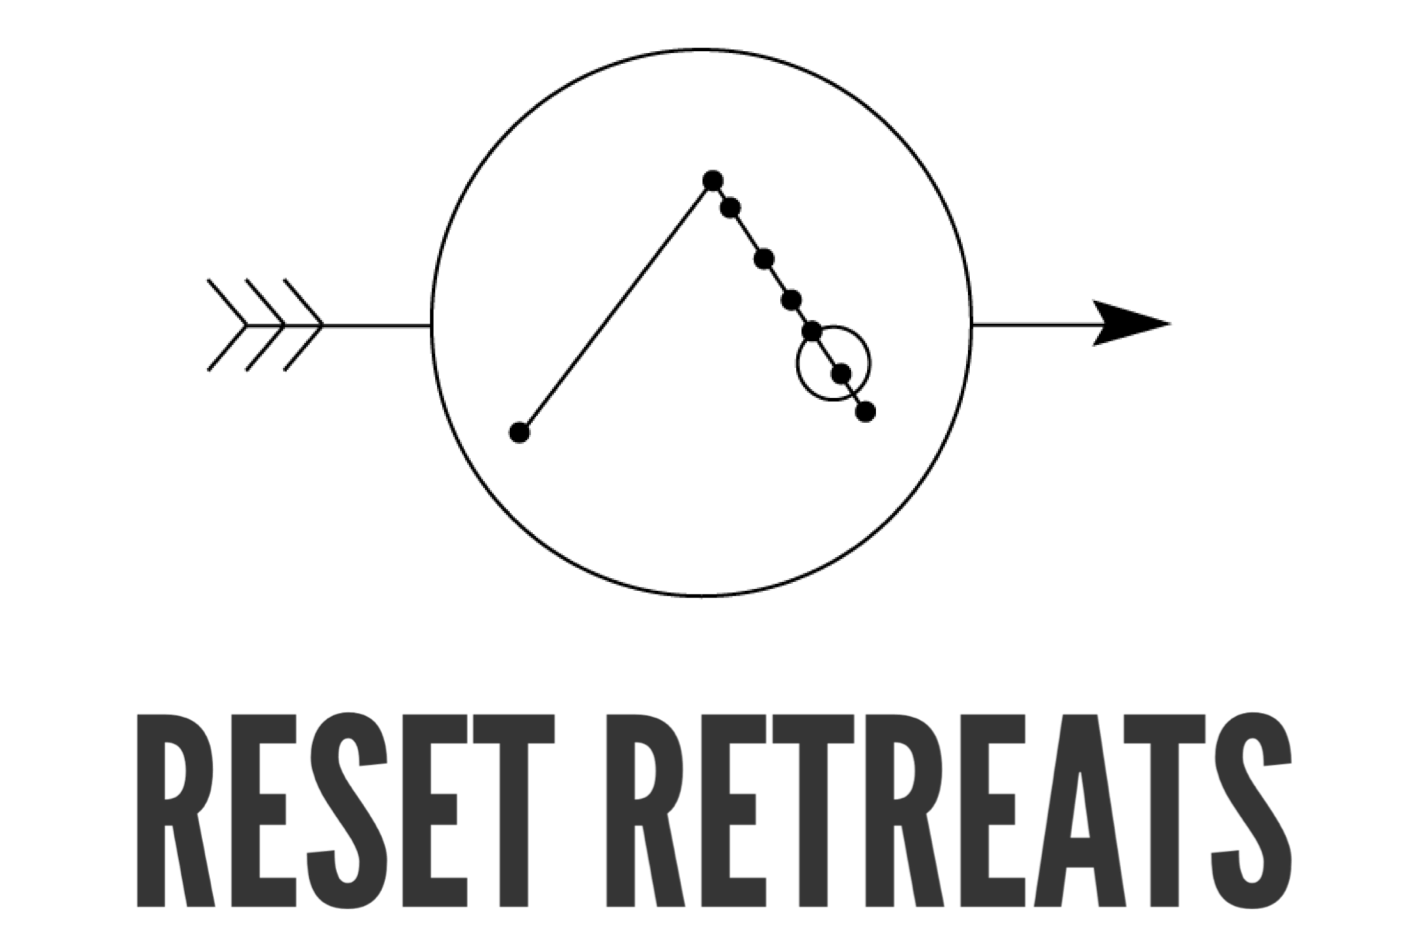 Reset Retreats